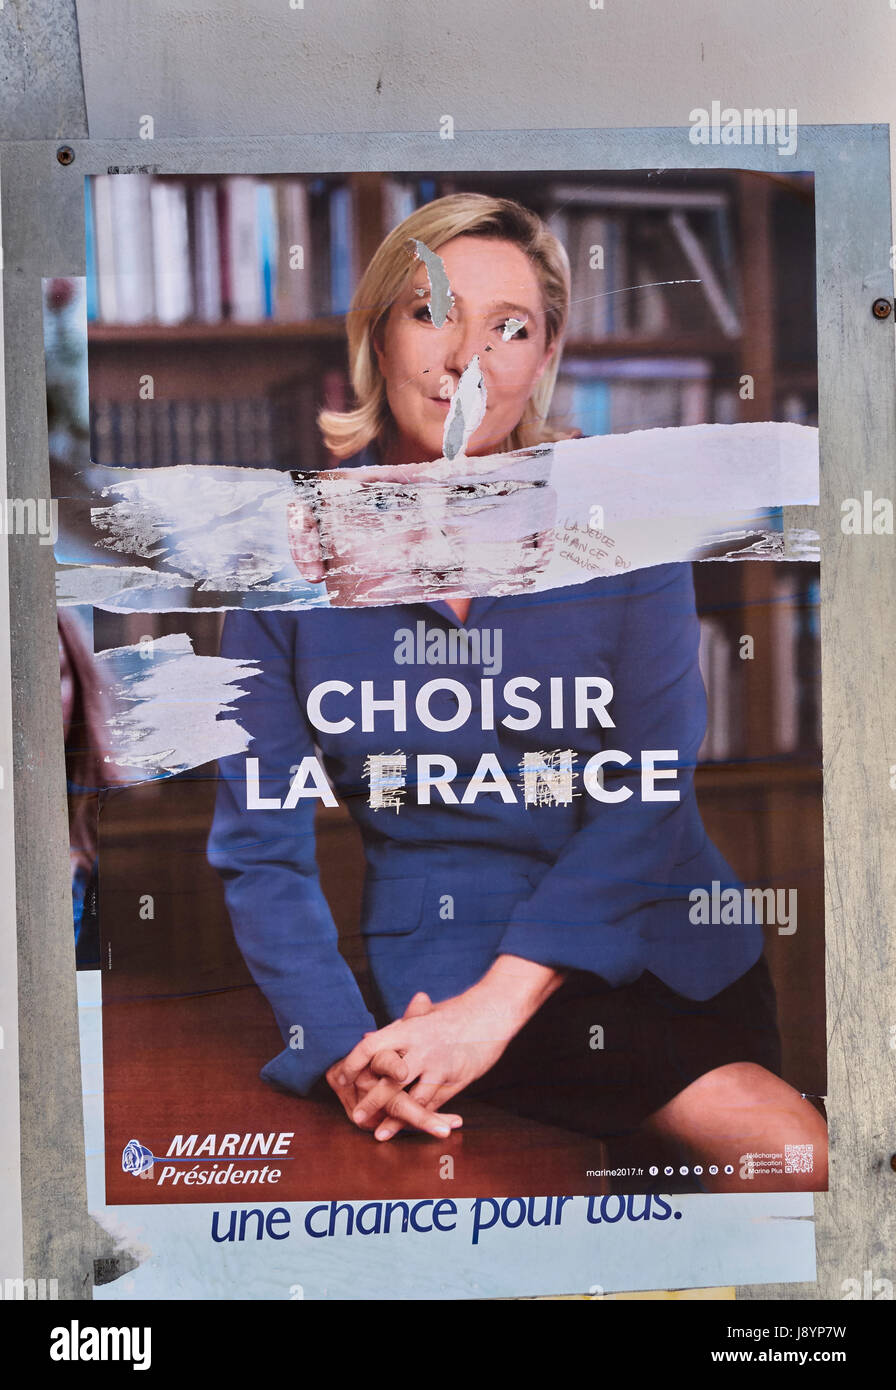 portrait of Marine Le Pen vandalized and disfigured by vandals during french presidential election in France - Stock Image